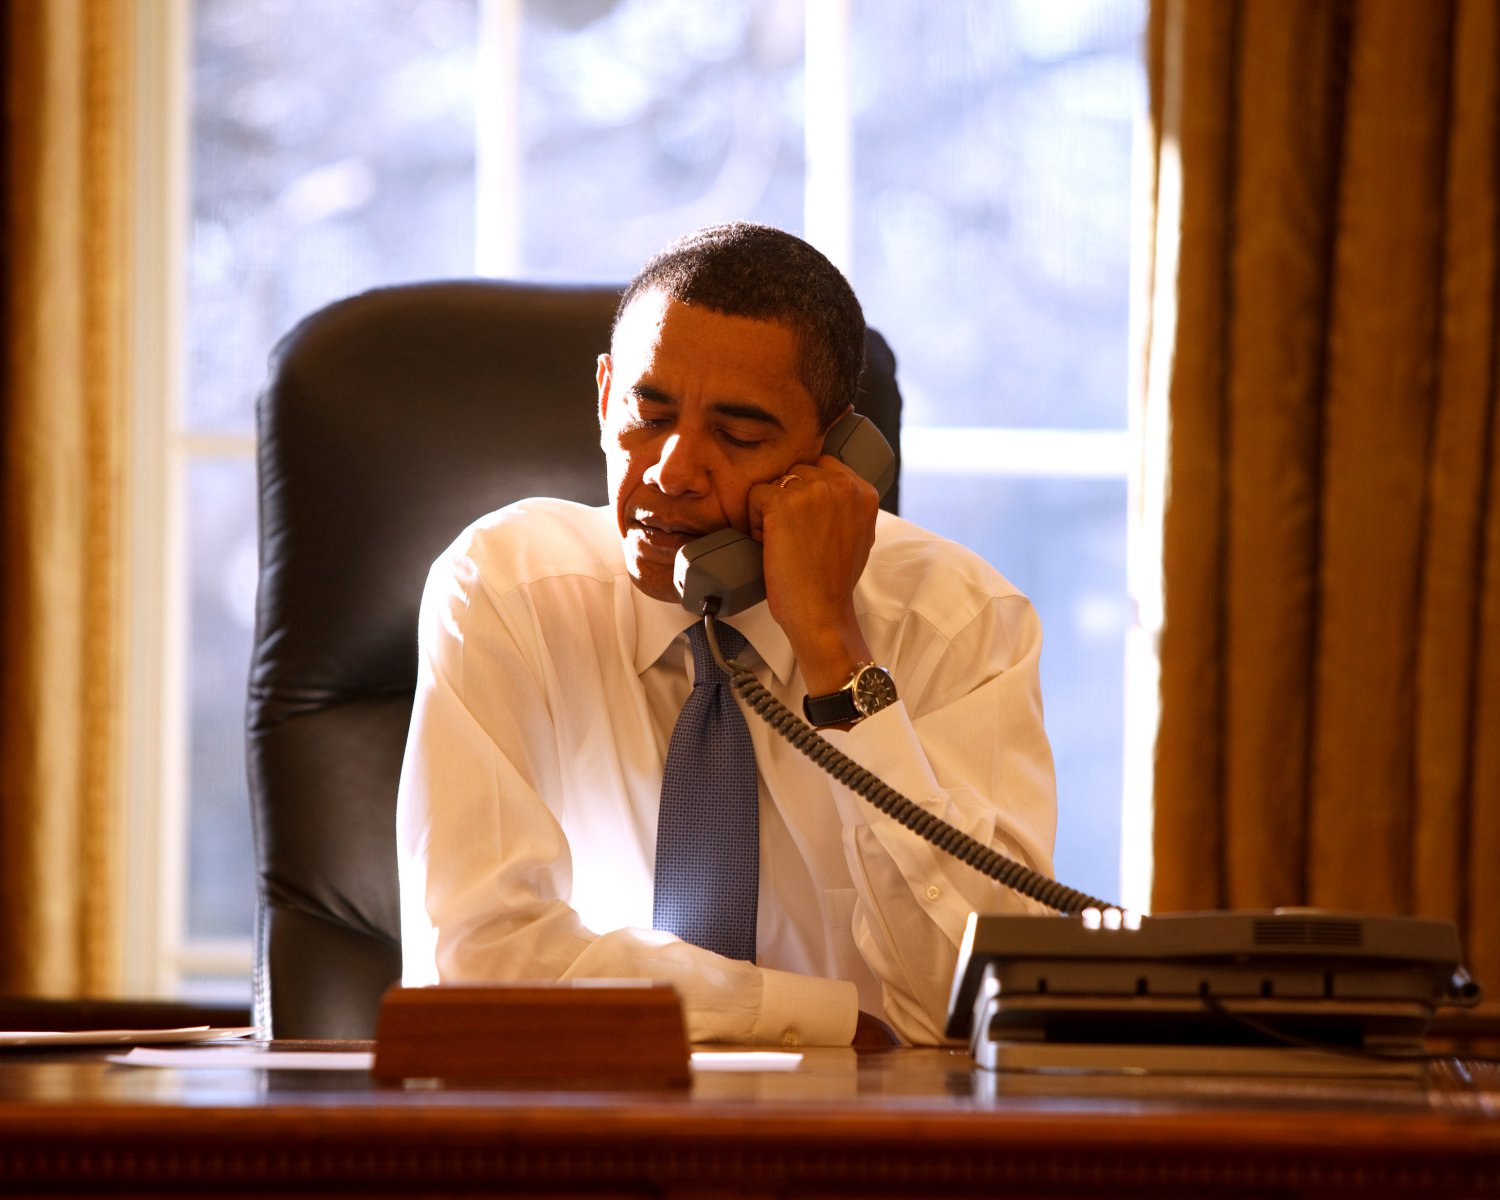 PRESIDENT BARACK OBAMA AT HIS DESK IN THE OVAL OFFICE - 8X10 PHOTO (ZY-173)